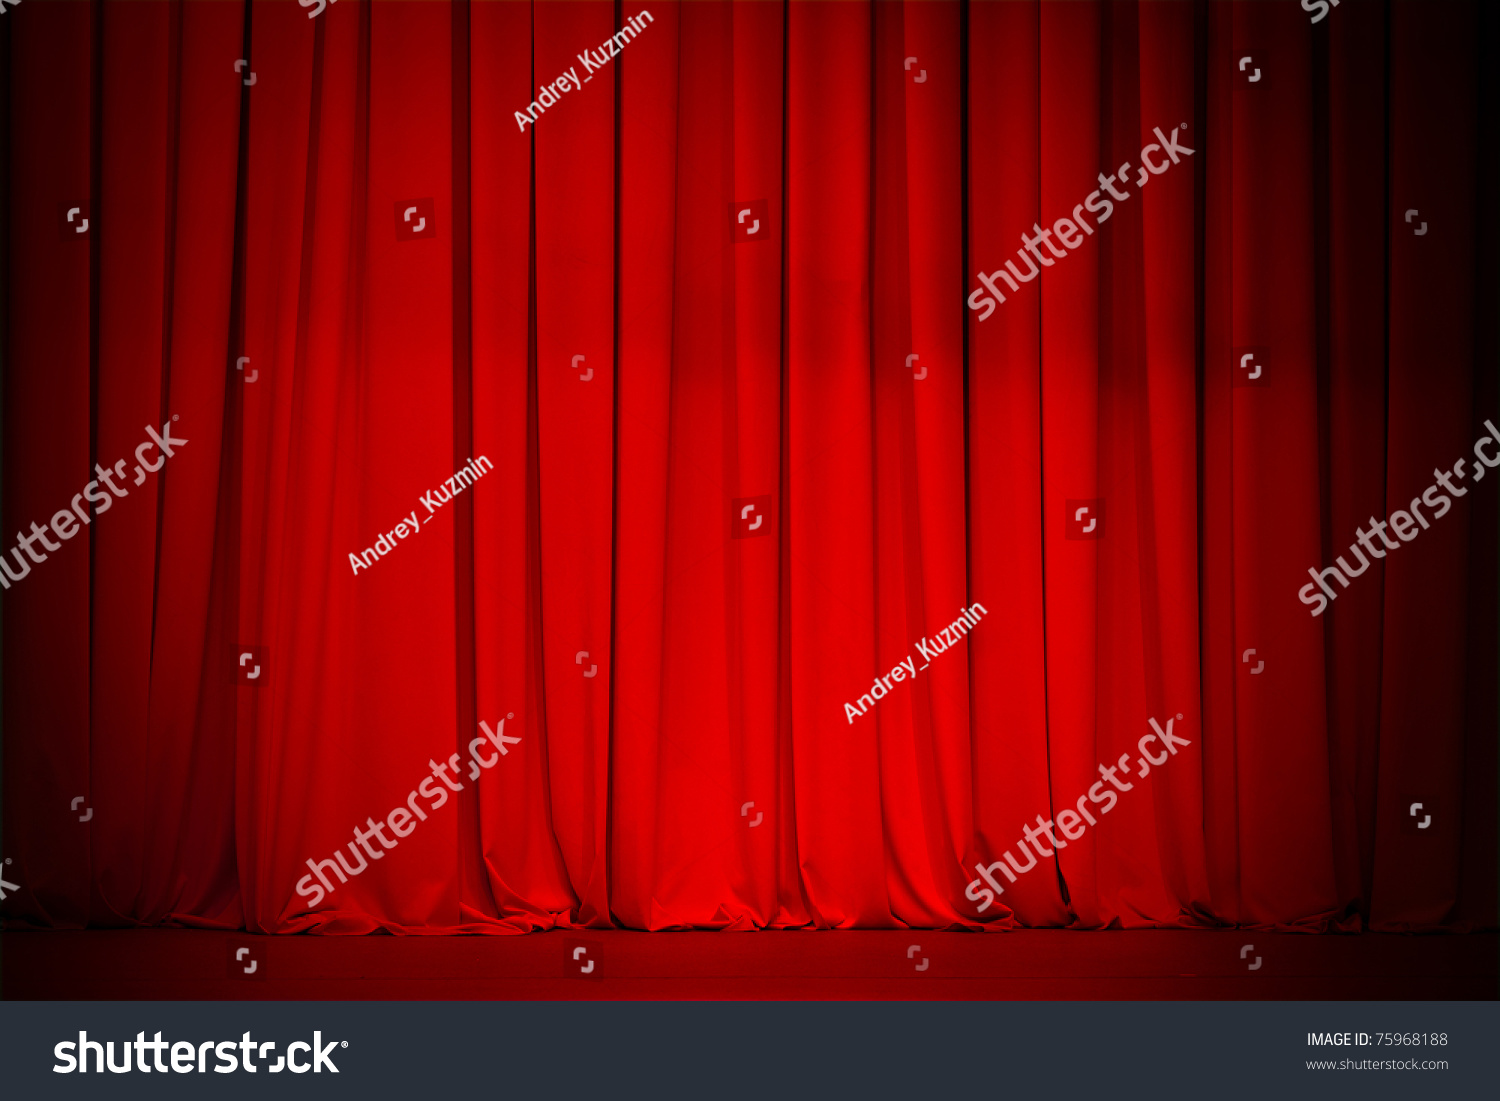 Big event red curtains with spotlight stock photo getty images - Red Curtain Background Stock Photo 75968188 Shutterstock